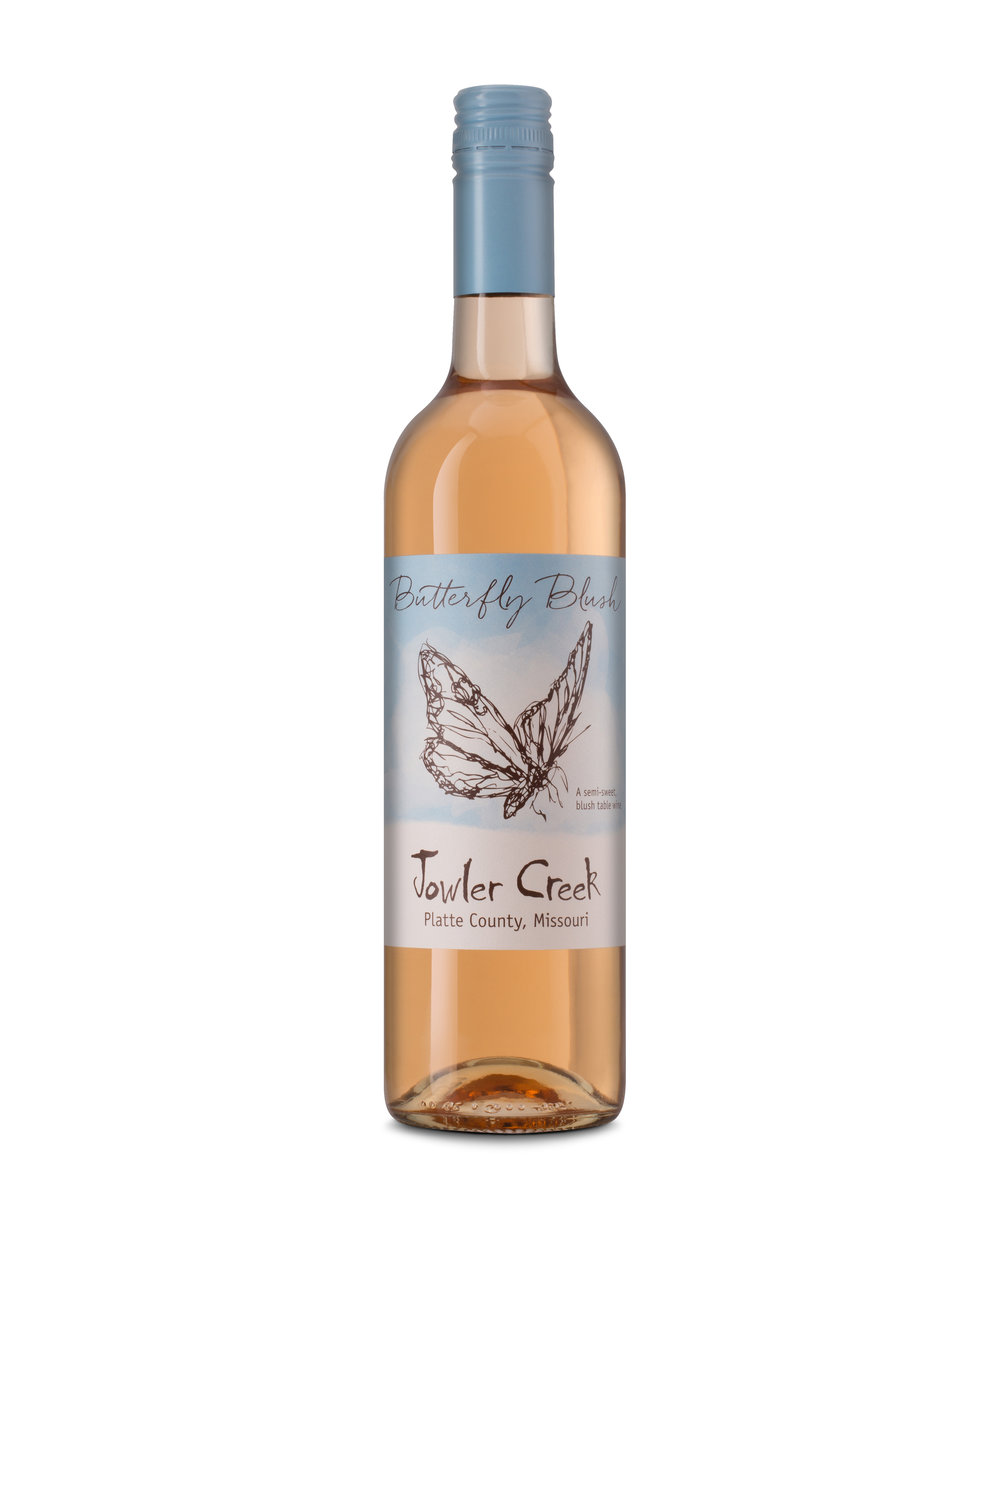 Jowler Creek Winery  makes the best Catawba wine in the Midwest and Missouri.  Jowler Creek  Butterfly Blush wine is made with catawba grapes. Come taste this wine in our  sustainable   winetasting  room  near Weston Missouri, Kansas City Missouri and St. Joseph Missouri.